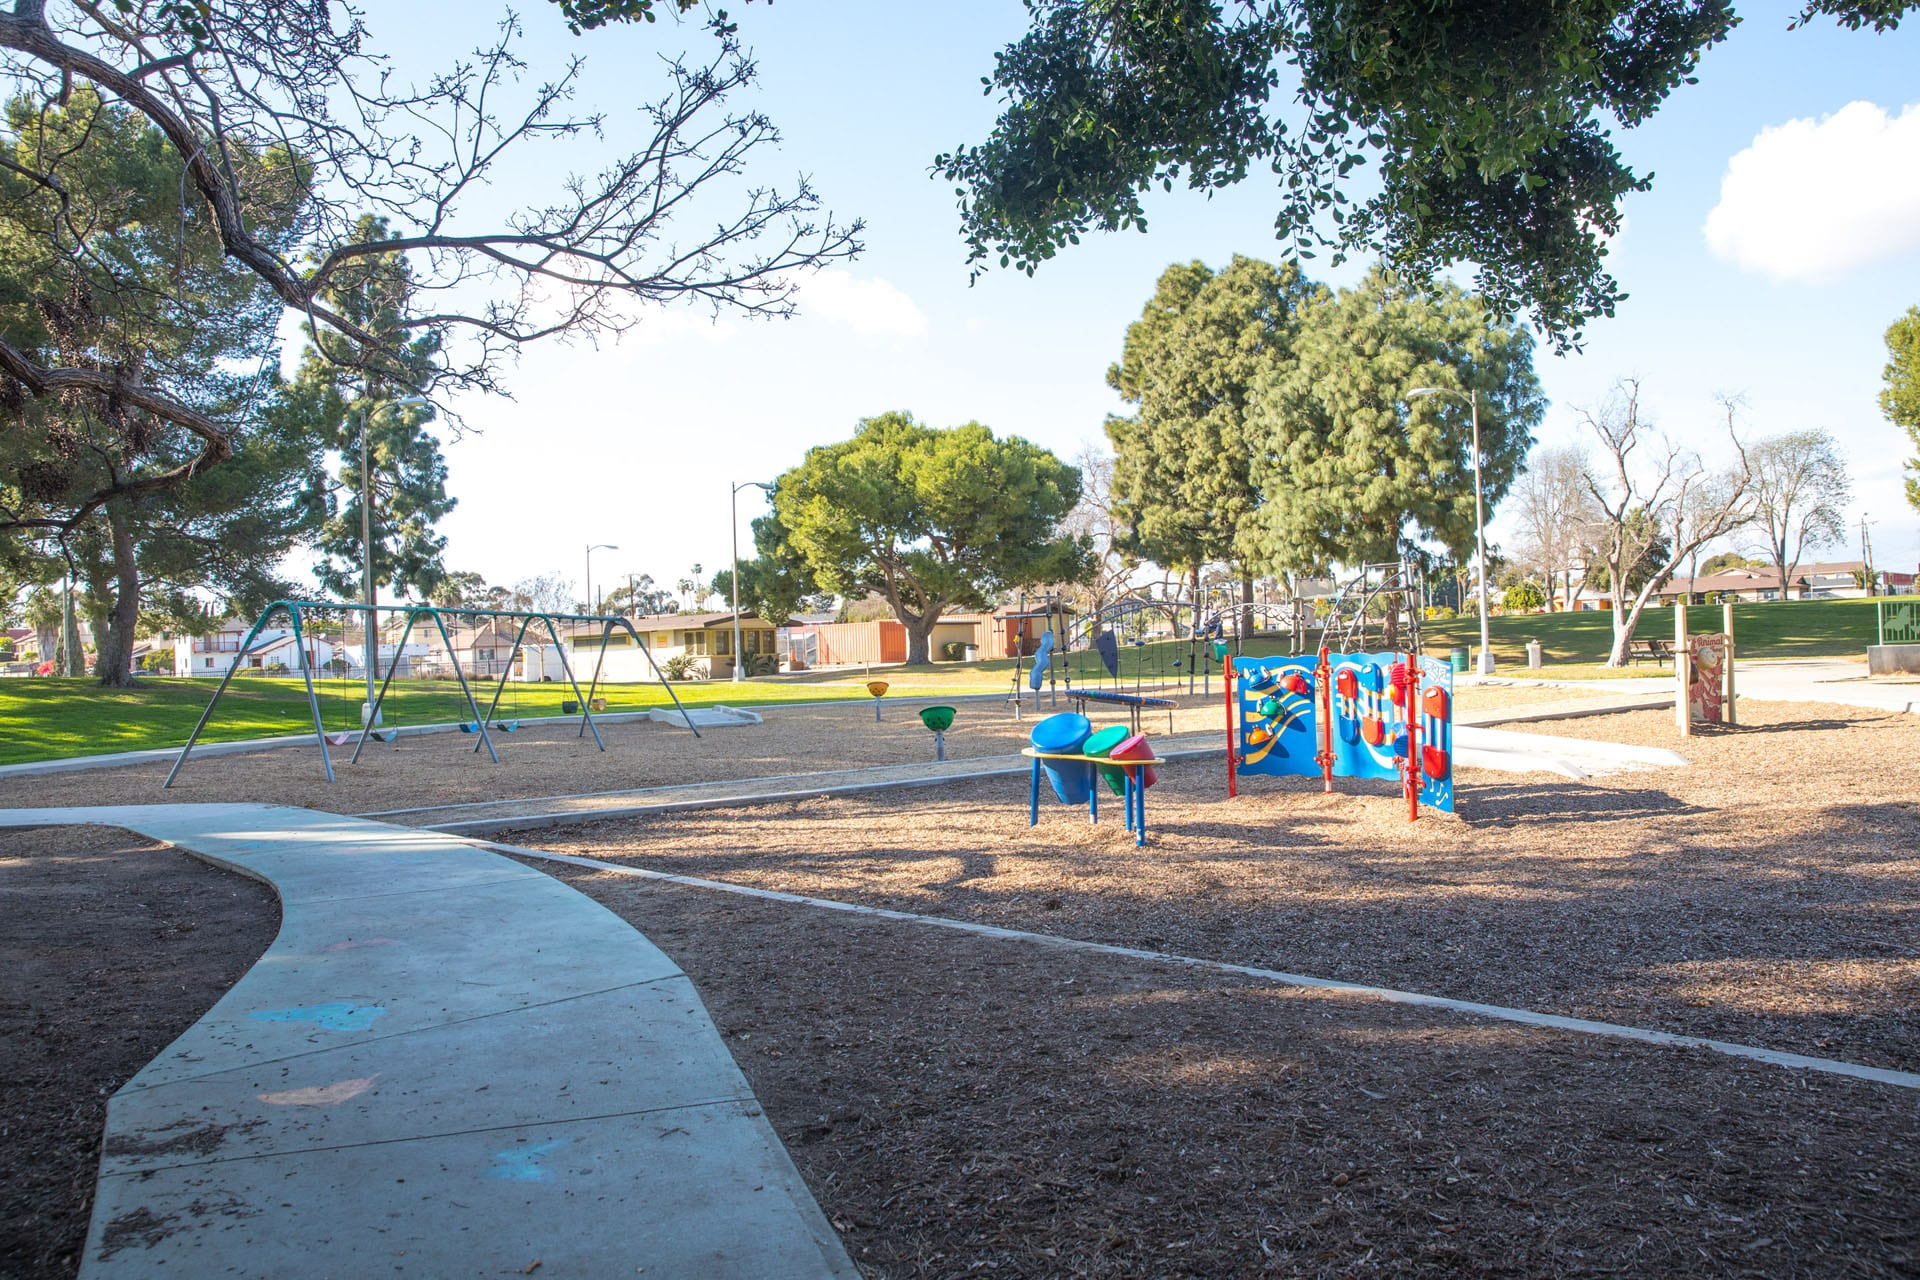 Athens Park play area and walking path